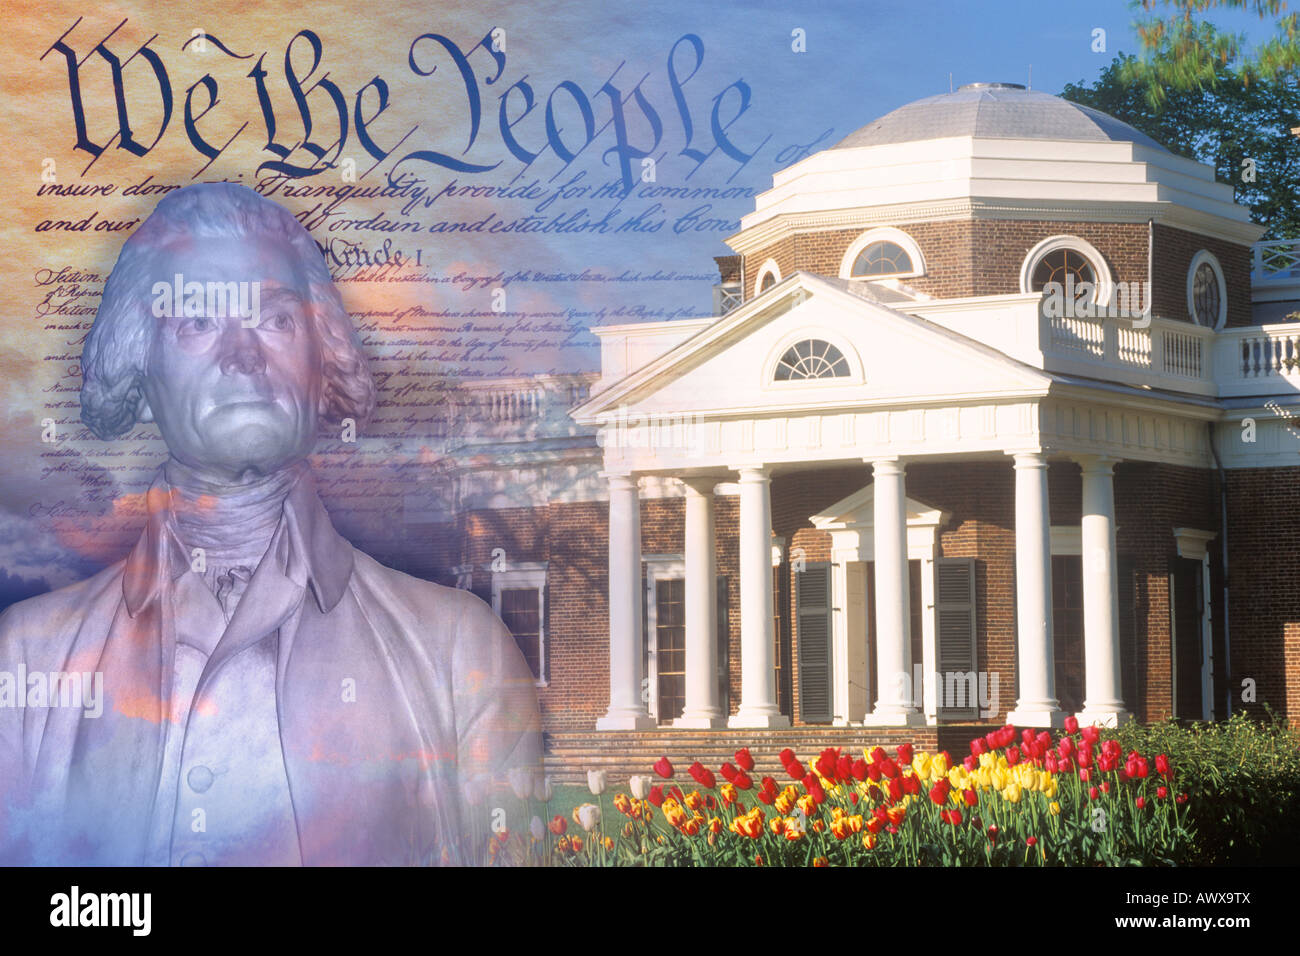 Composite image of Monticello, US Constitution, and bust of Thomas Jefferson - Stock Image